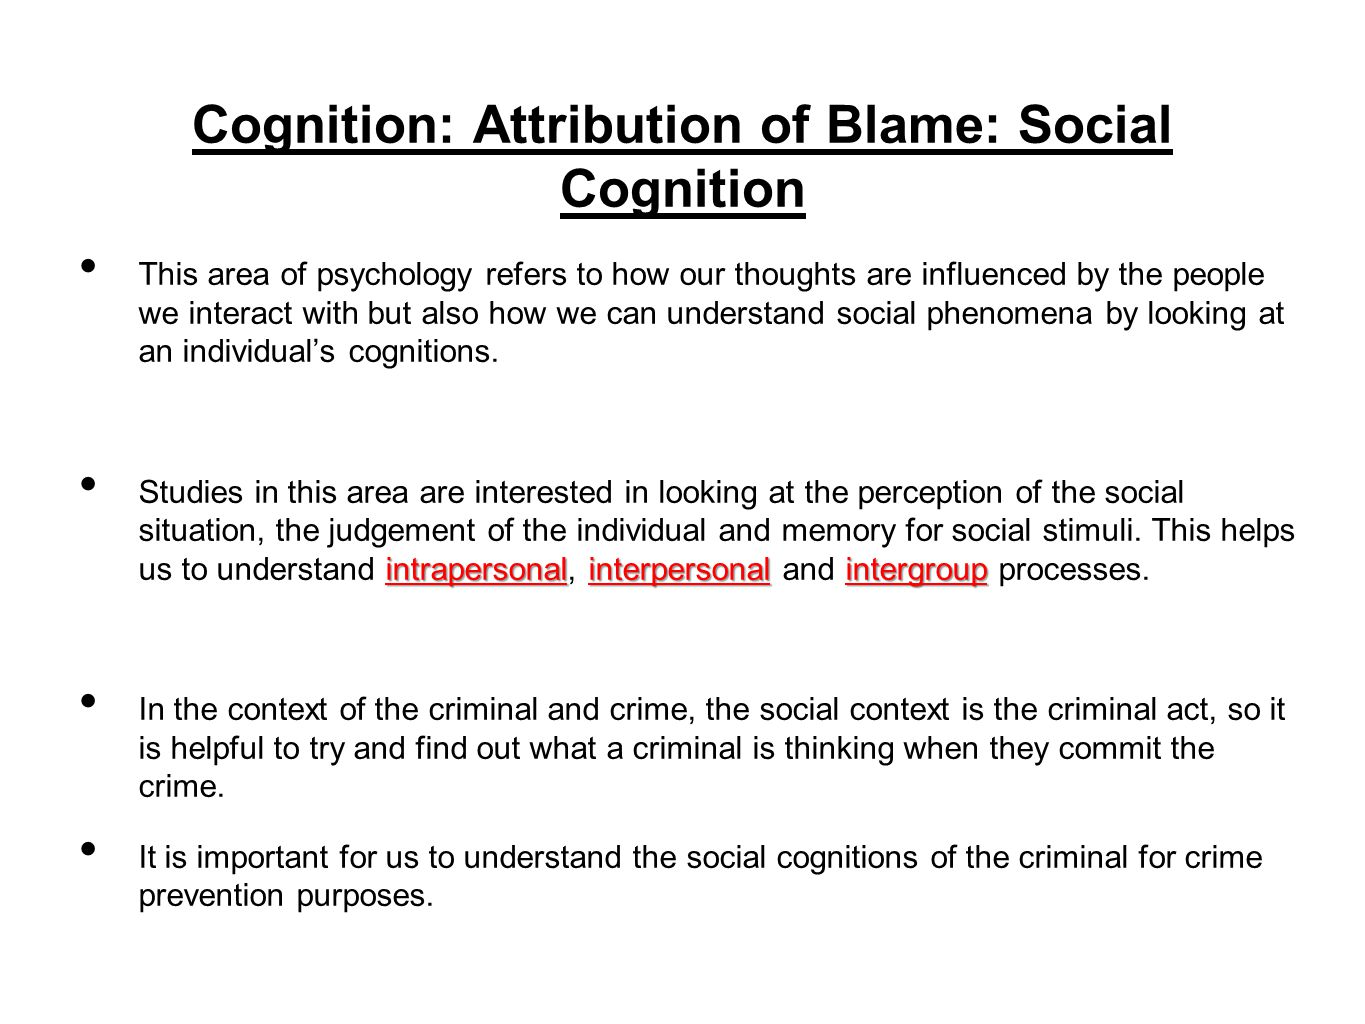 Cognition: Attribution of Blame: Social Cognition